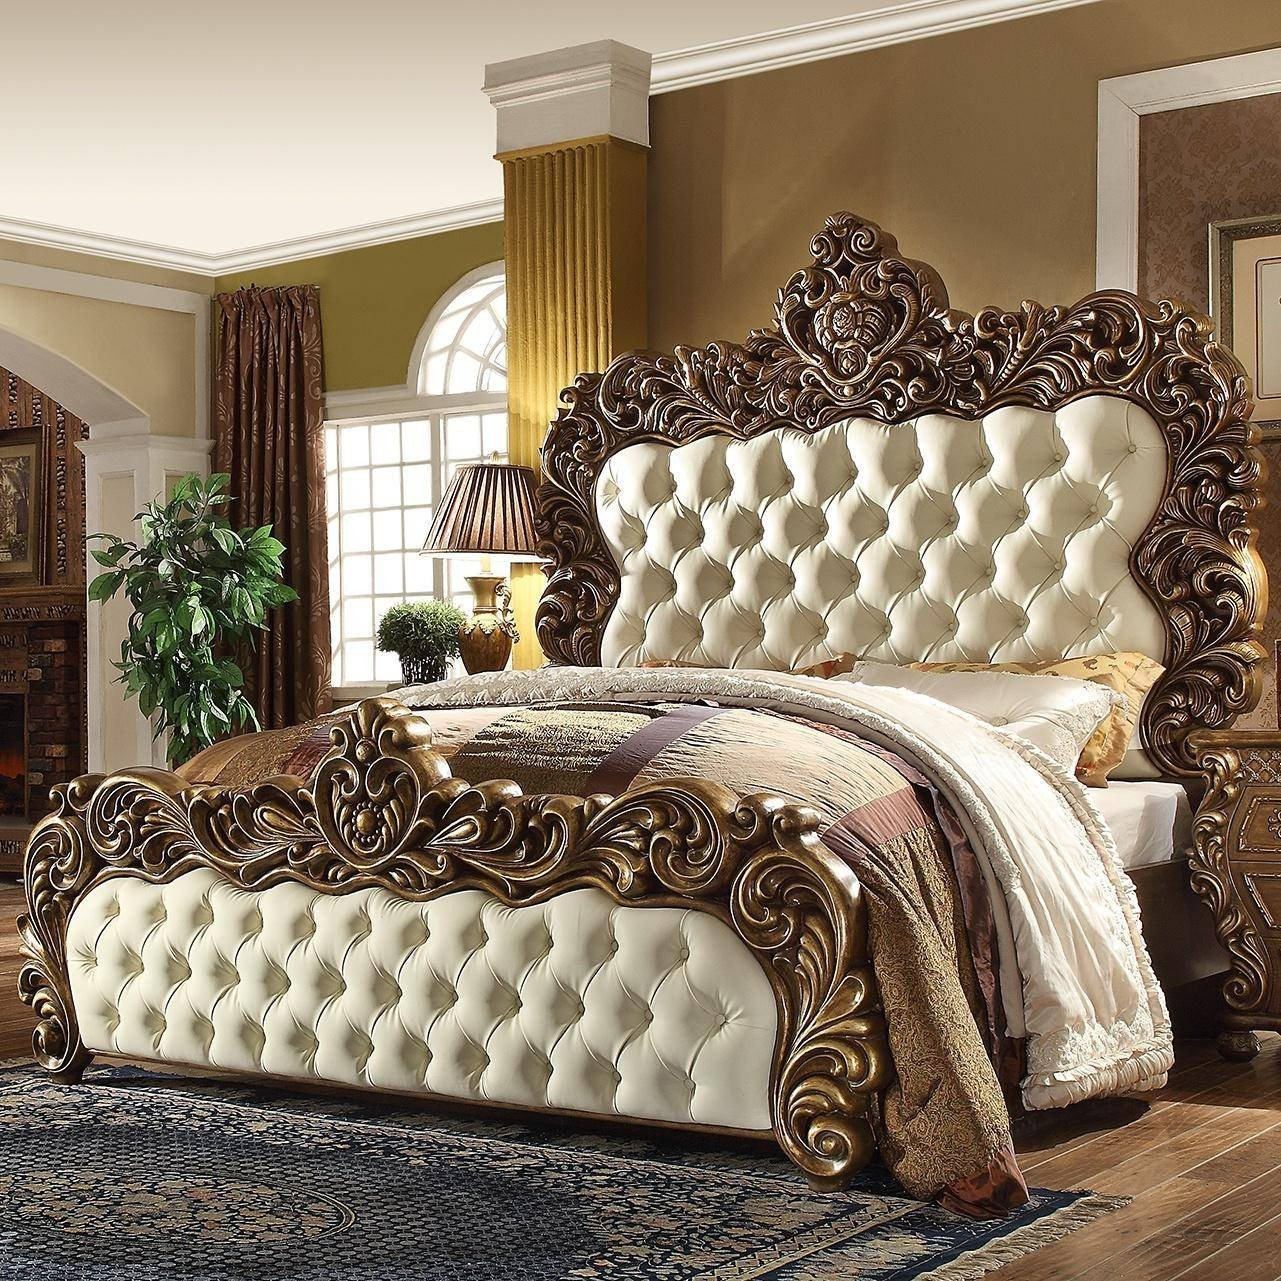 Golden and White Bedroom Elegant Rich Walnut Golden Finish Cal King Bedroom Set 5pcs